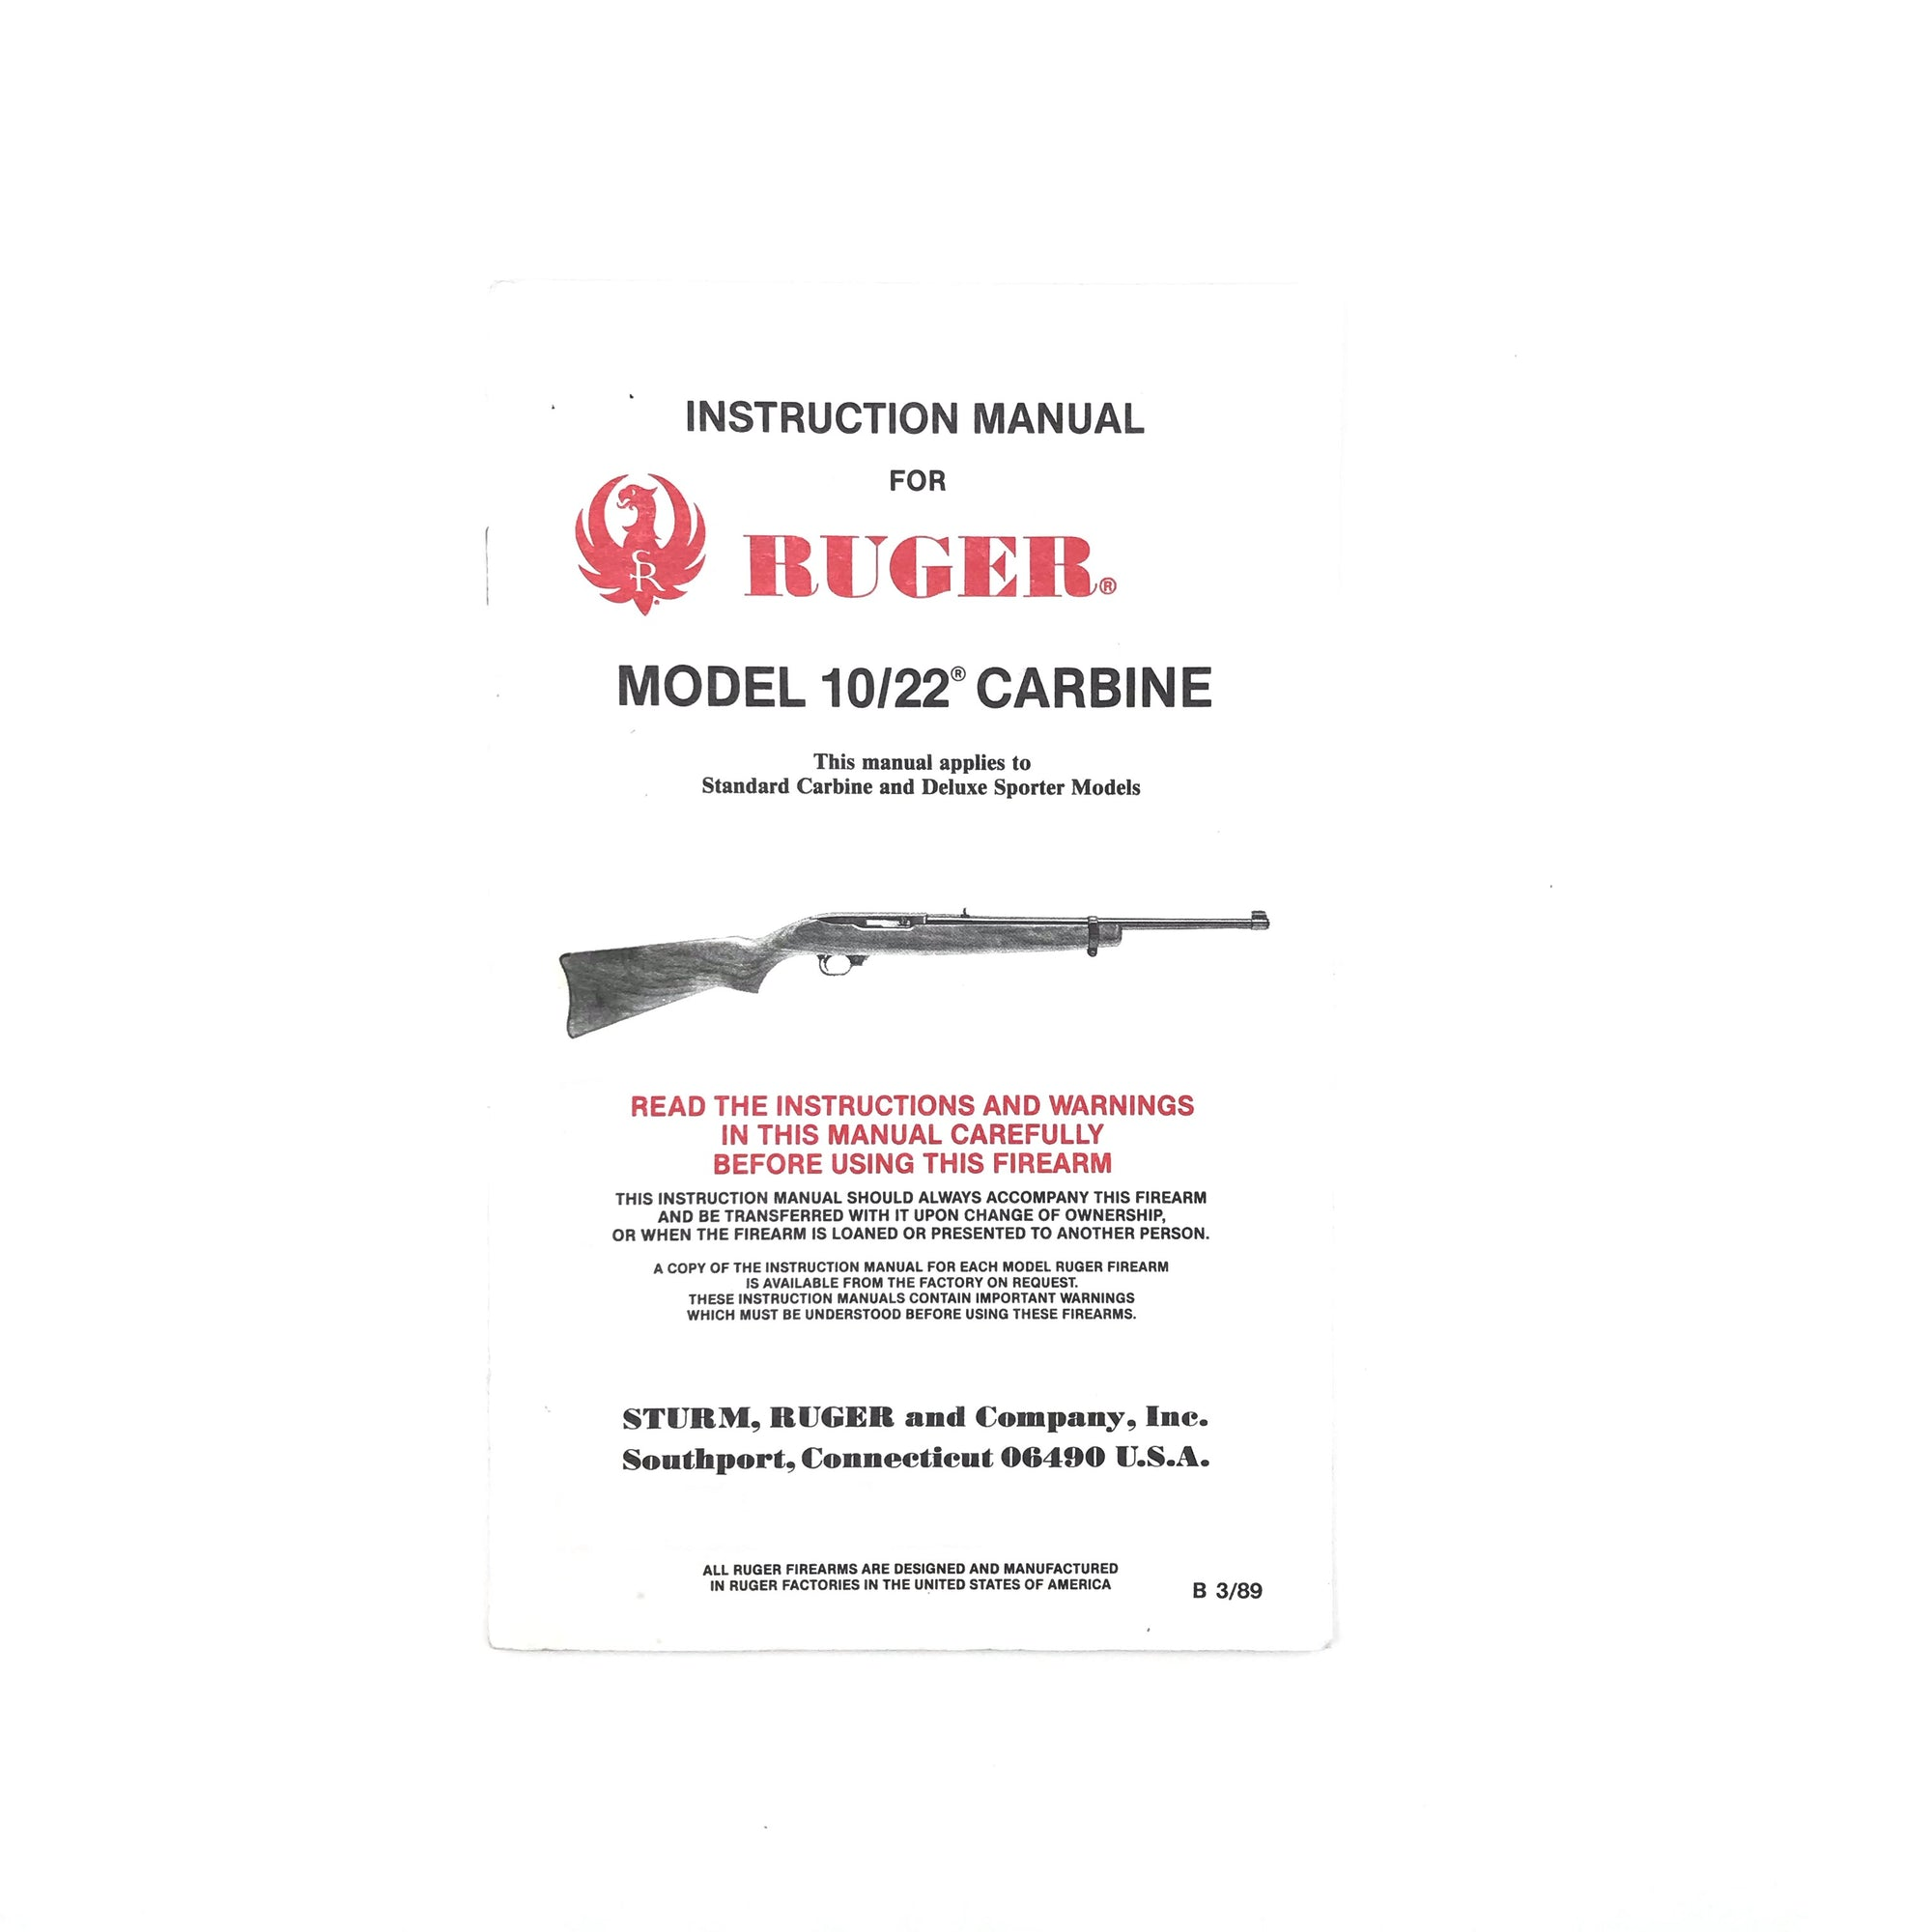 Instruction Manual for Ruger Model 10/22 Carbine